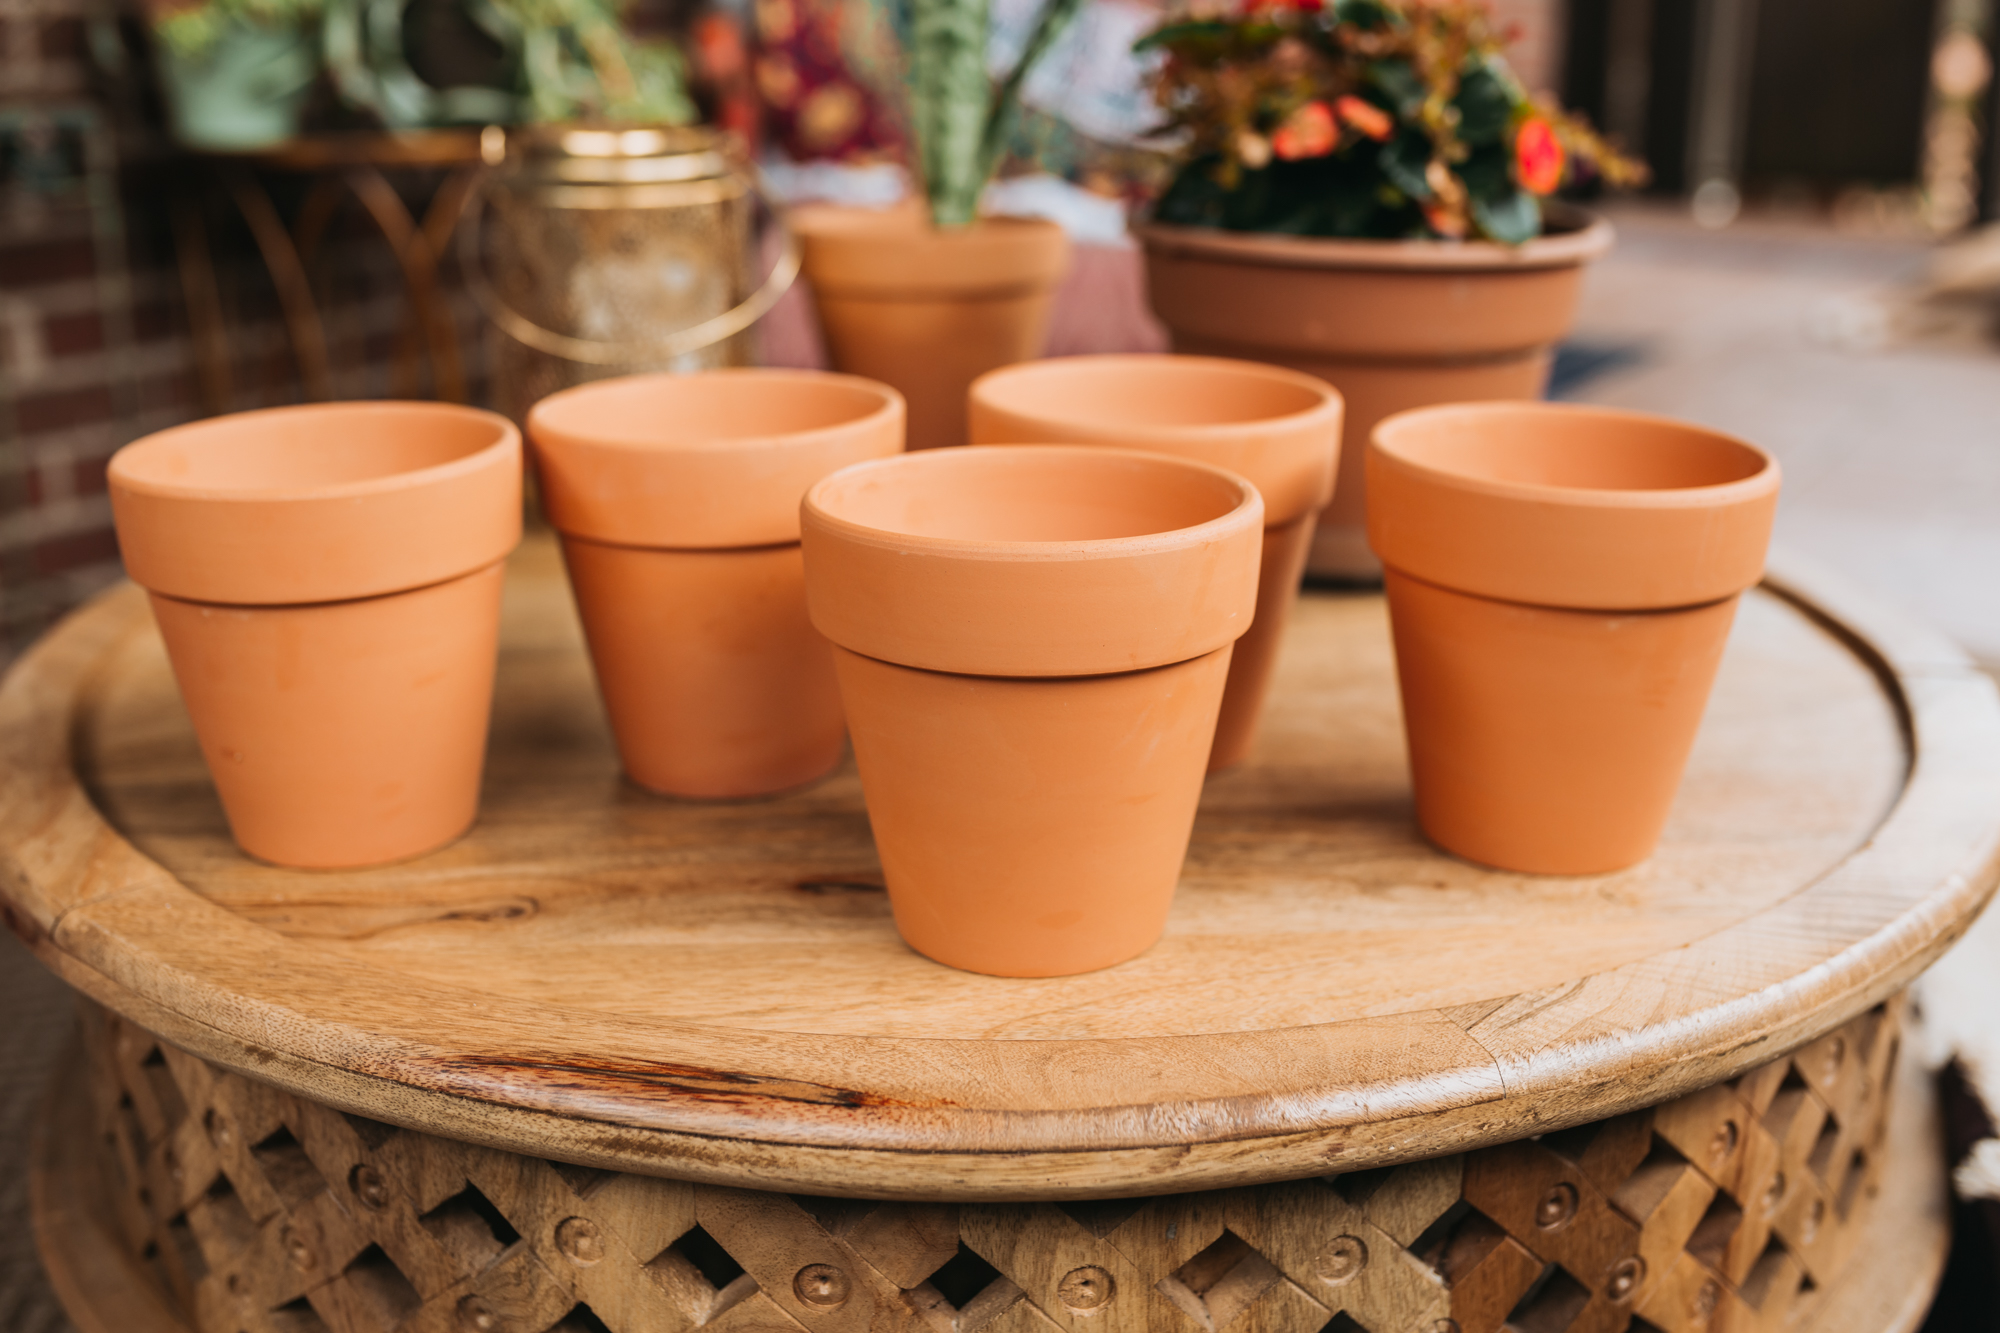 Clean and bare Terra Cotta pots